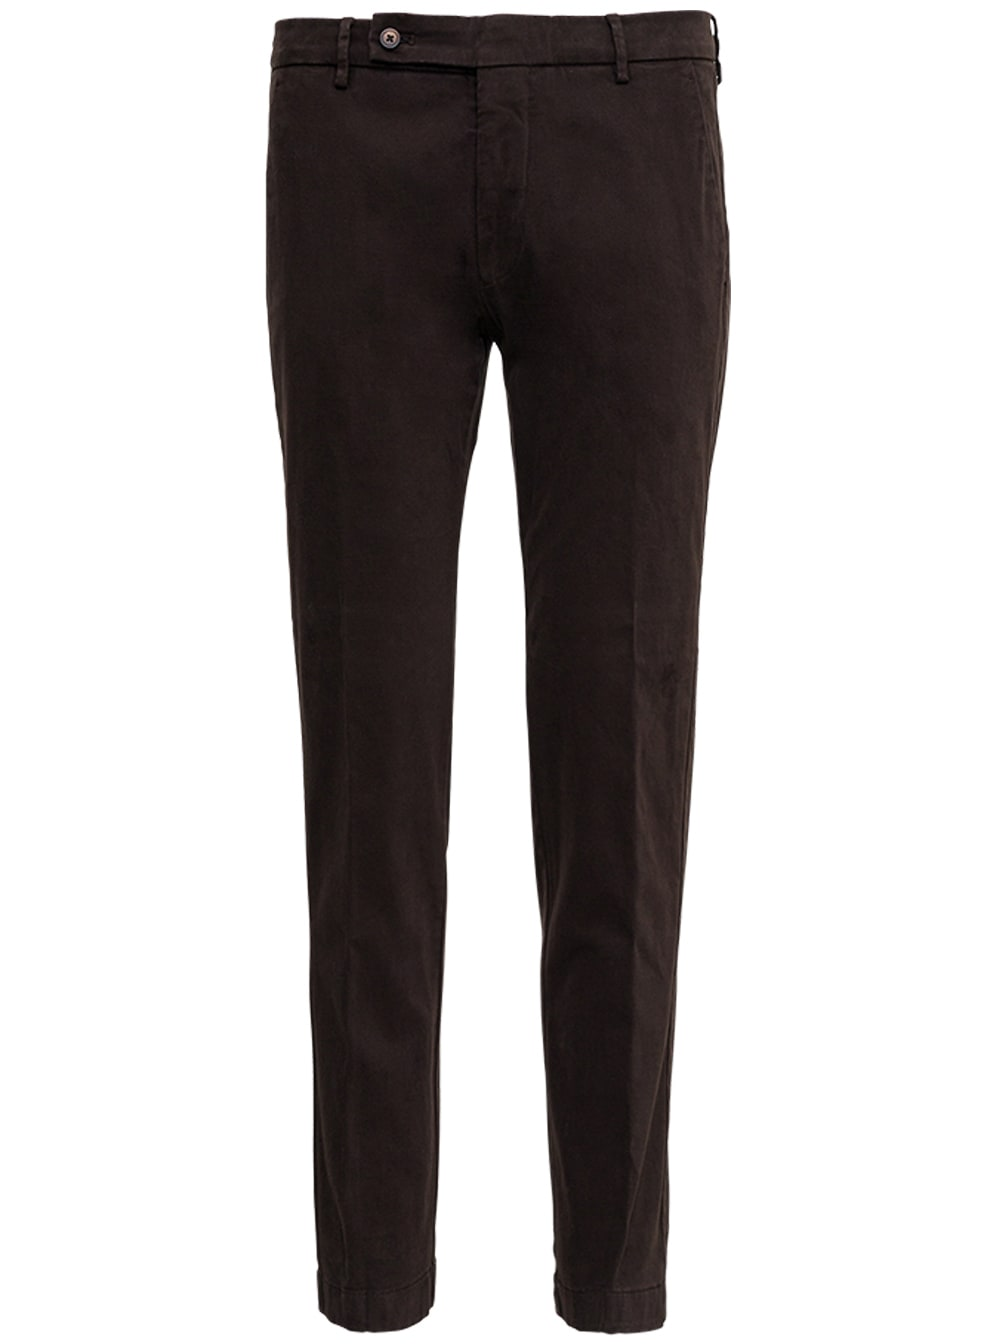 Brown Cotton Tailored Pants